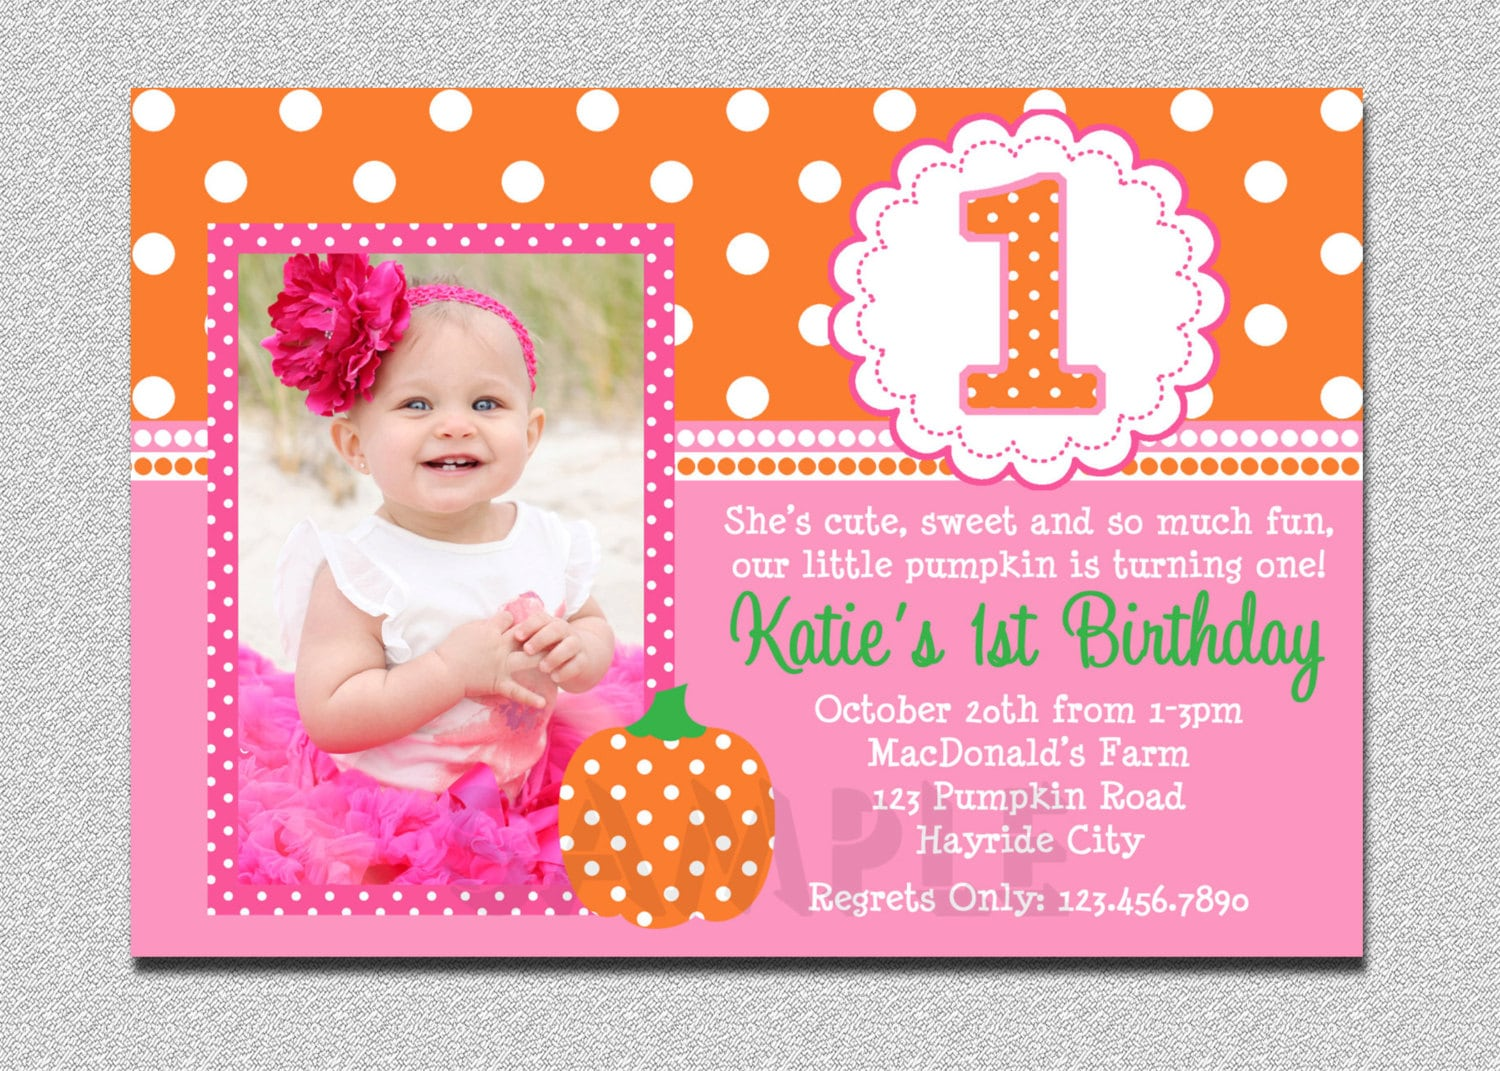 Pumpkin Birthday Invitation Pumpkin 1st Birthday Party Etsy